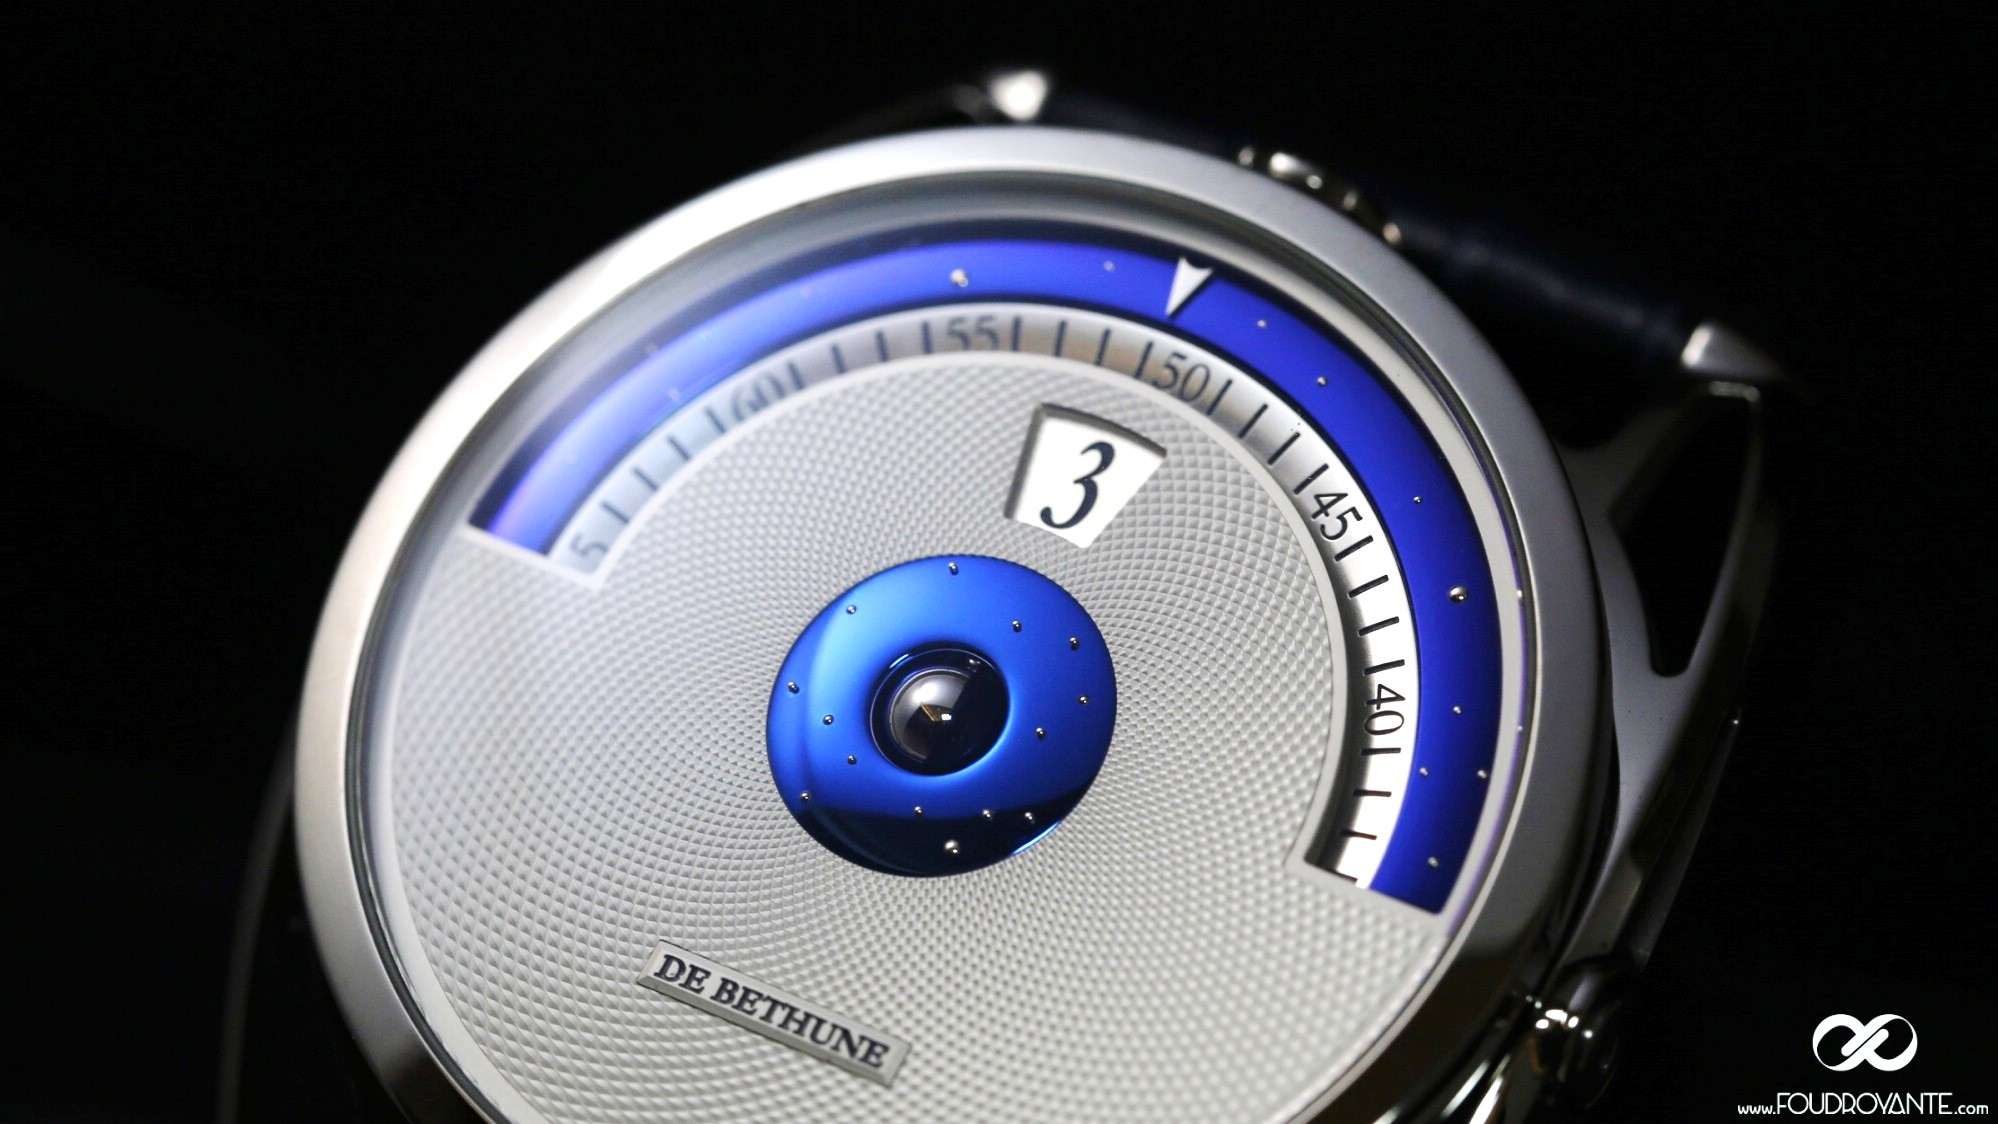 De Bethune DB28 Digital(7)